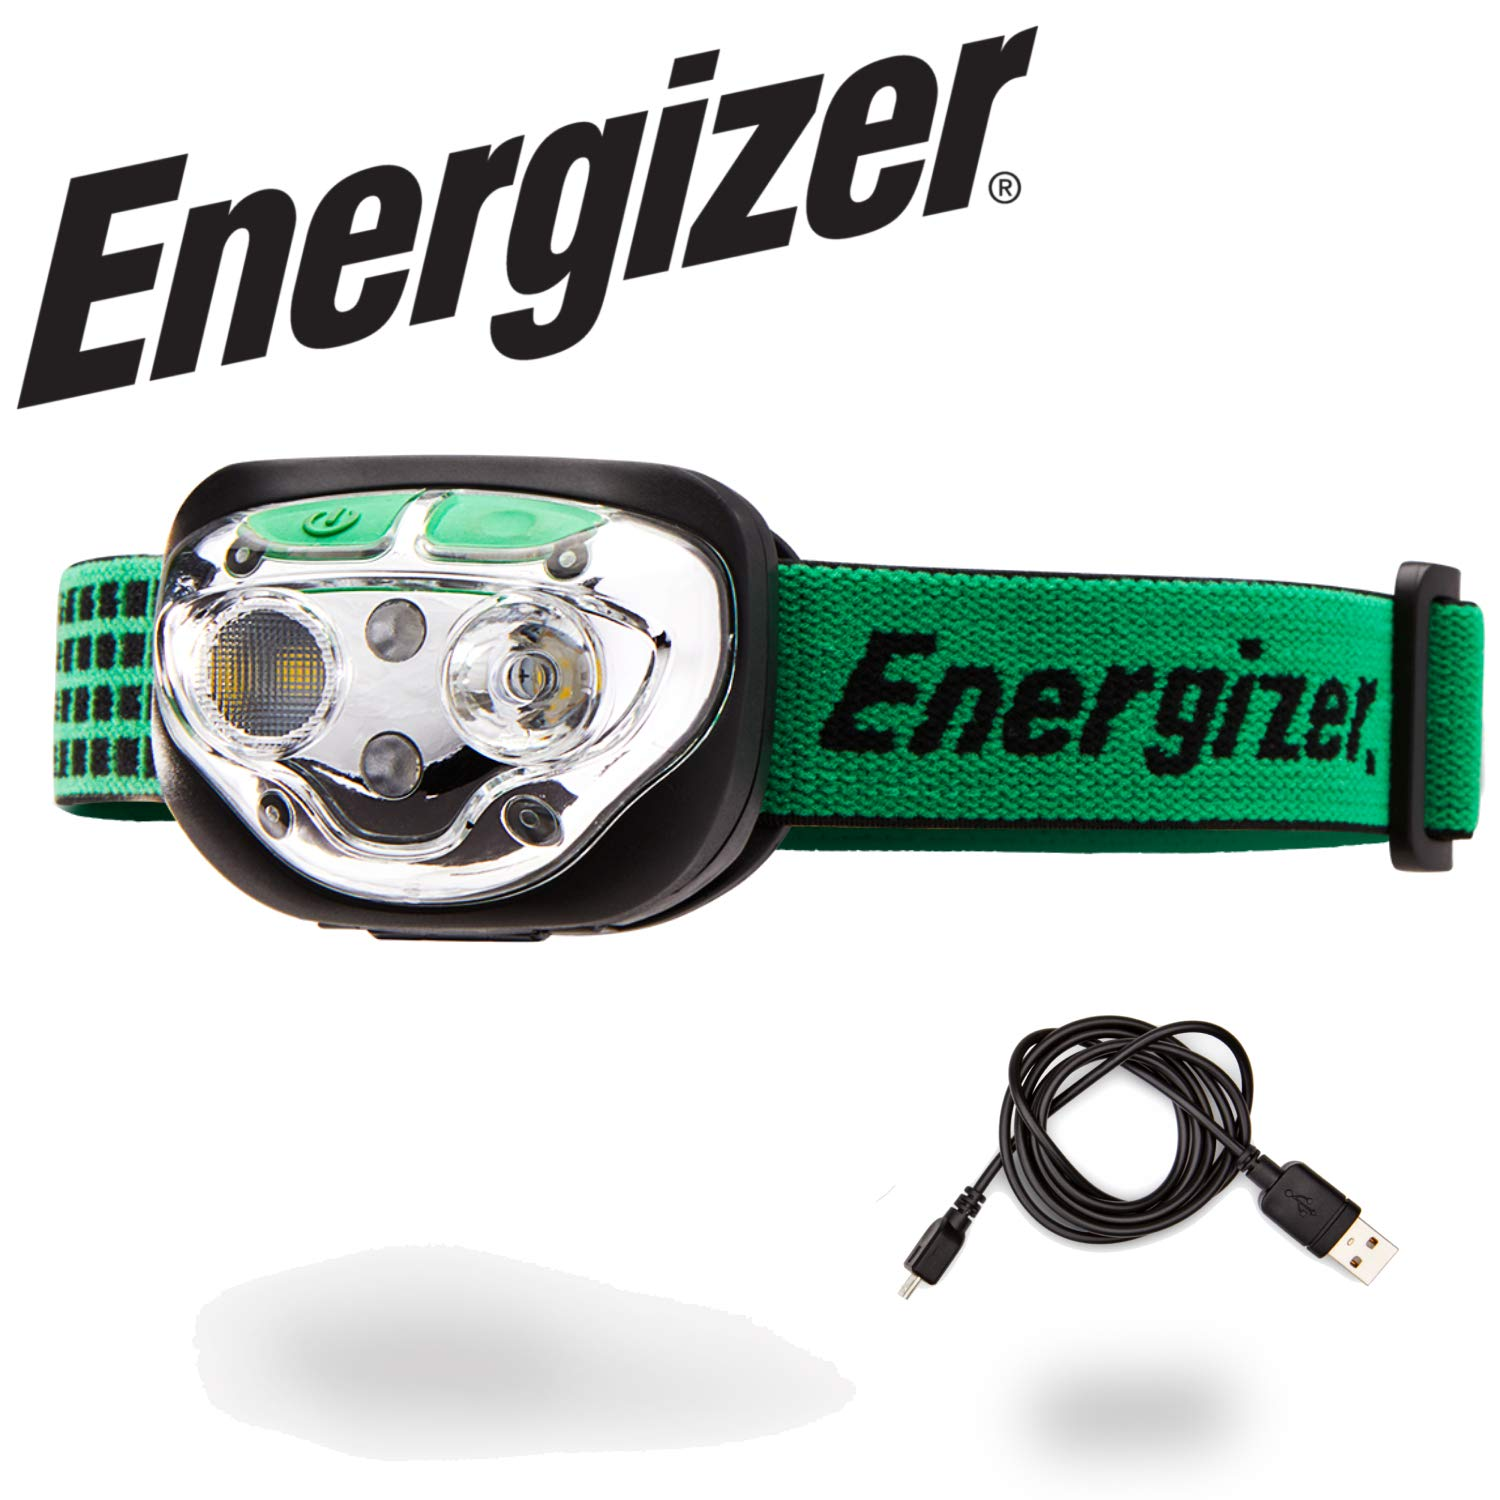 Energizer LED Headlamp Flashlight, High Lumens, for Camping, Running, Hiking, Sports, Outdoor Head Lamp, Rechargeable Headlamp Option, Water-Resistant Headlight by Energizer